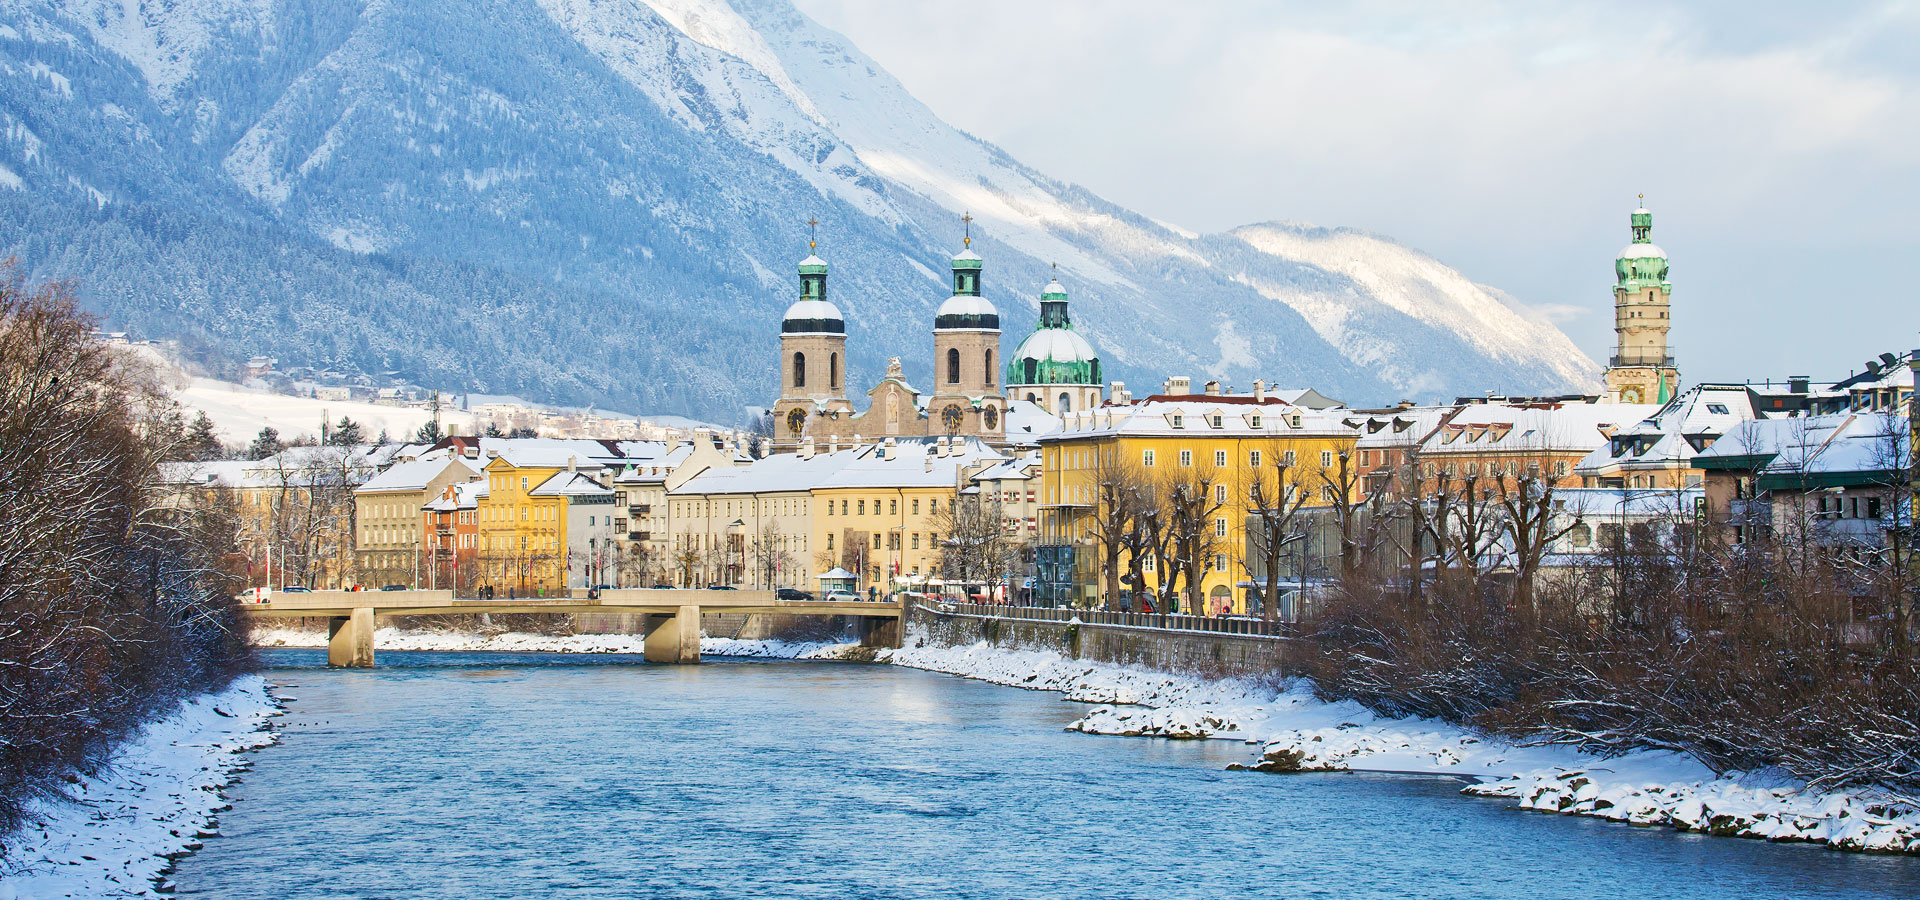 Innsbruck from across the river